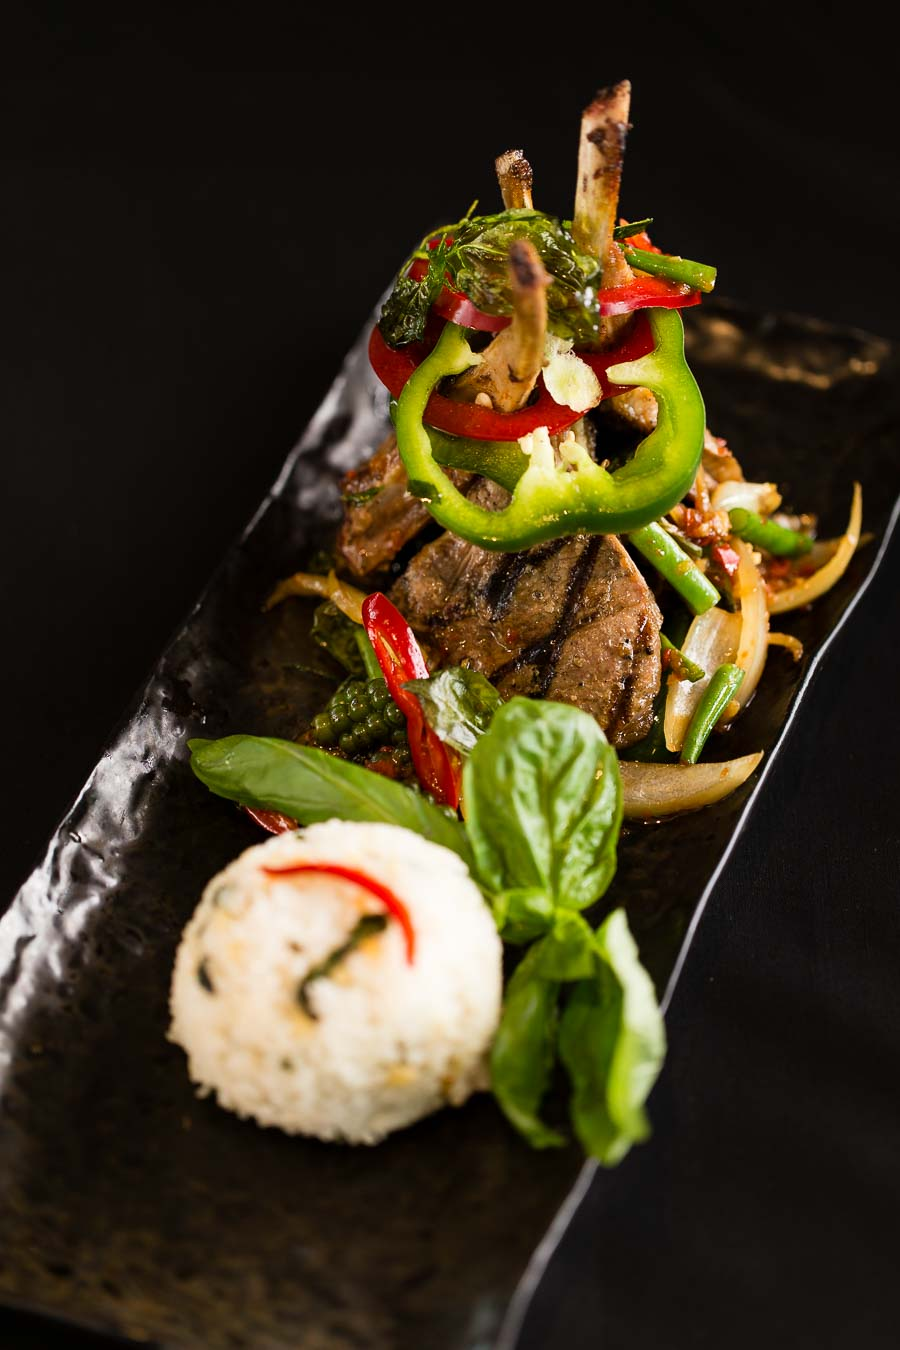 A textured, dark, rectangular plate with meat on the bone, bell peppers, herbs and a ball of white rice, on a black background